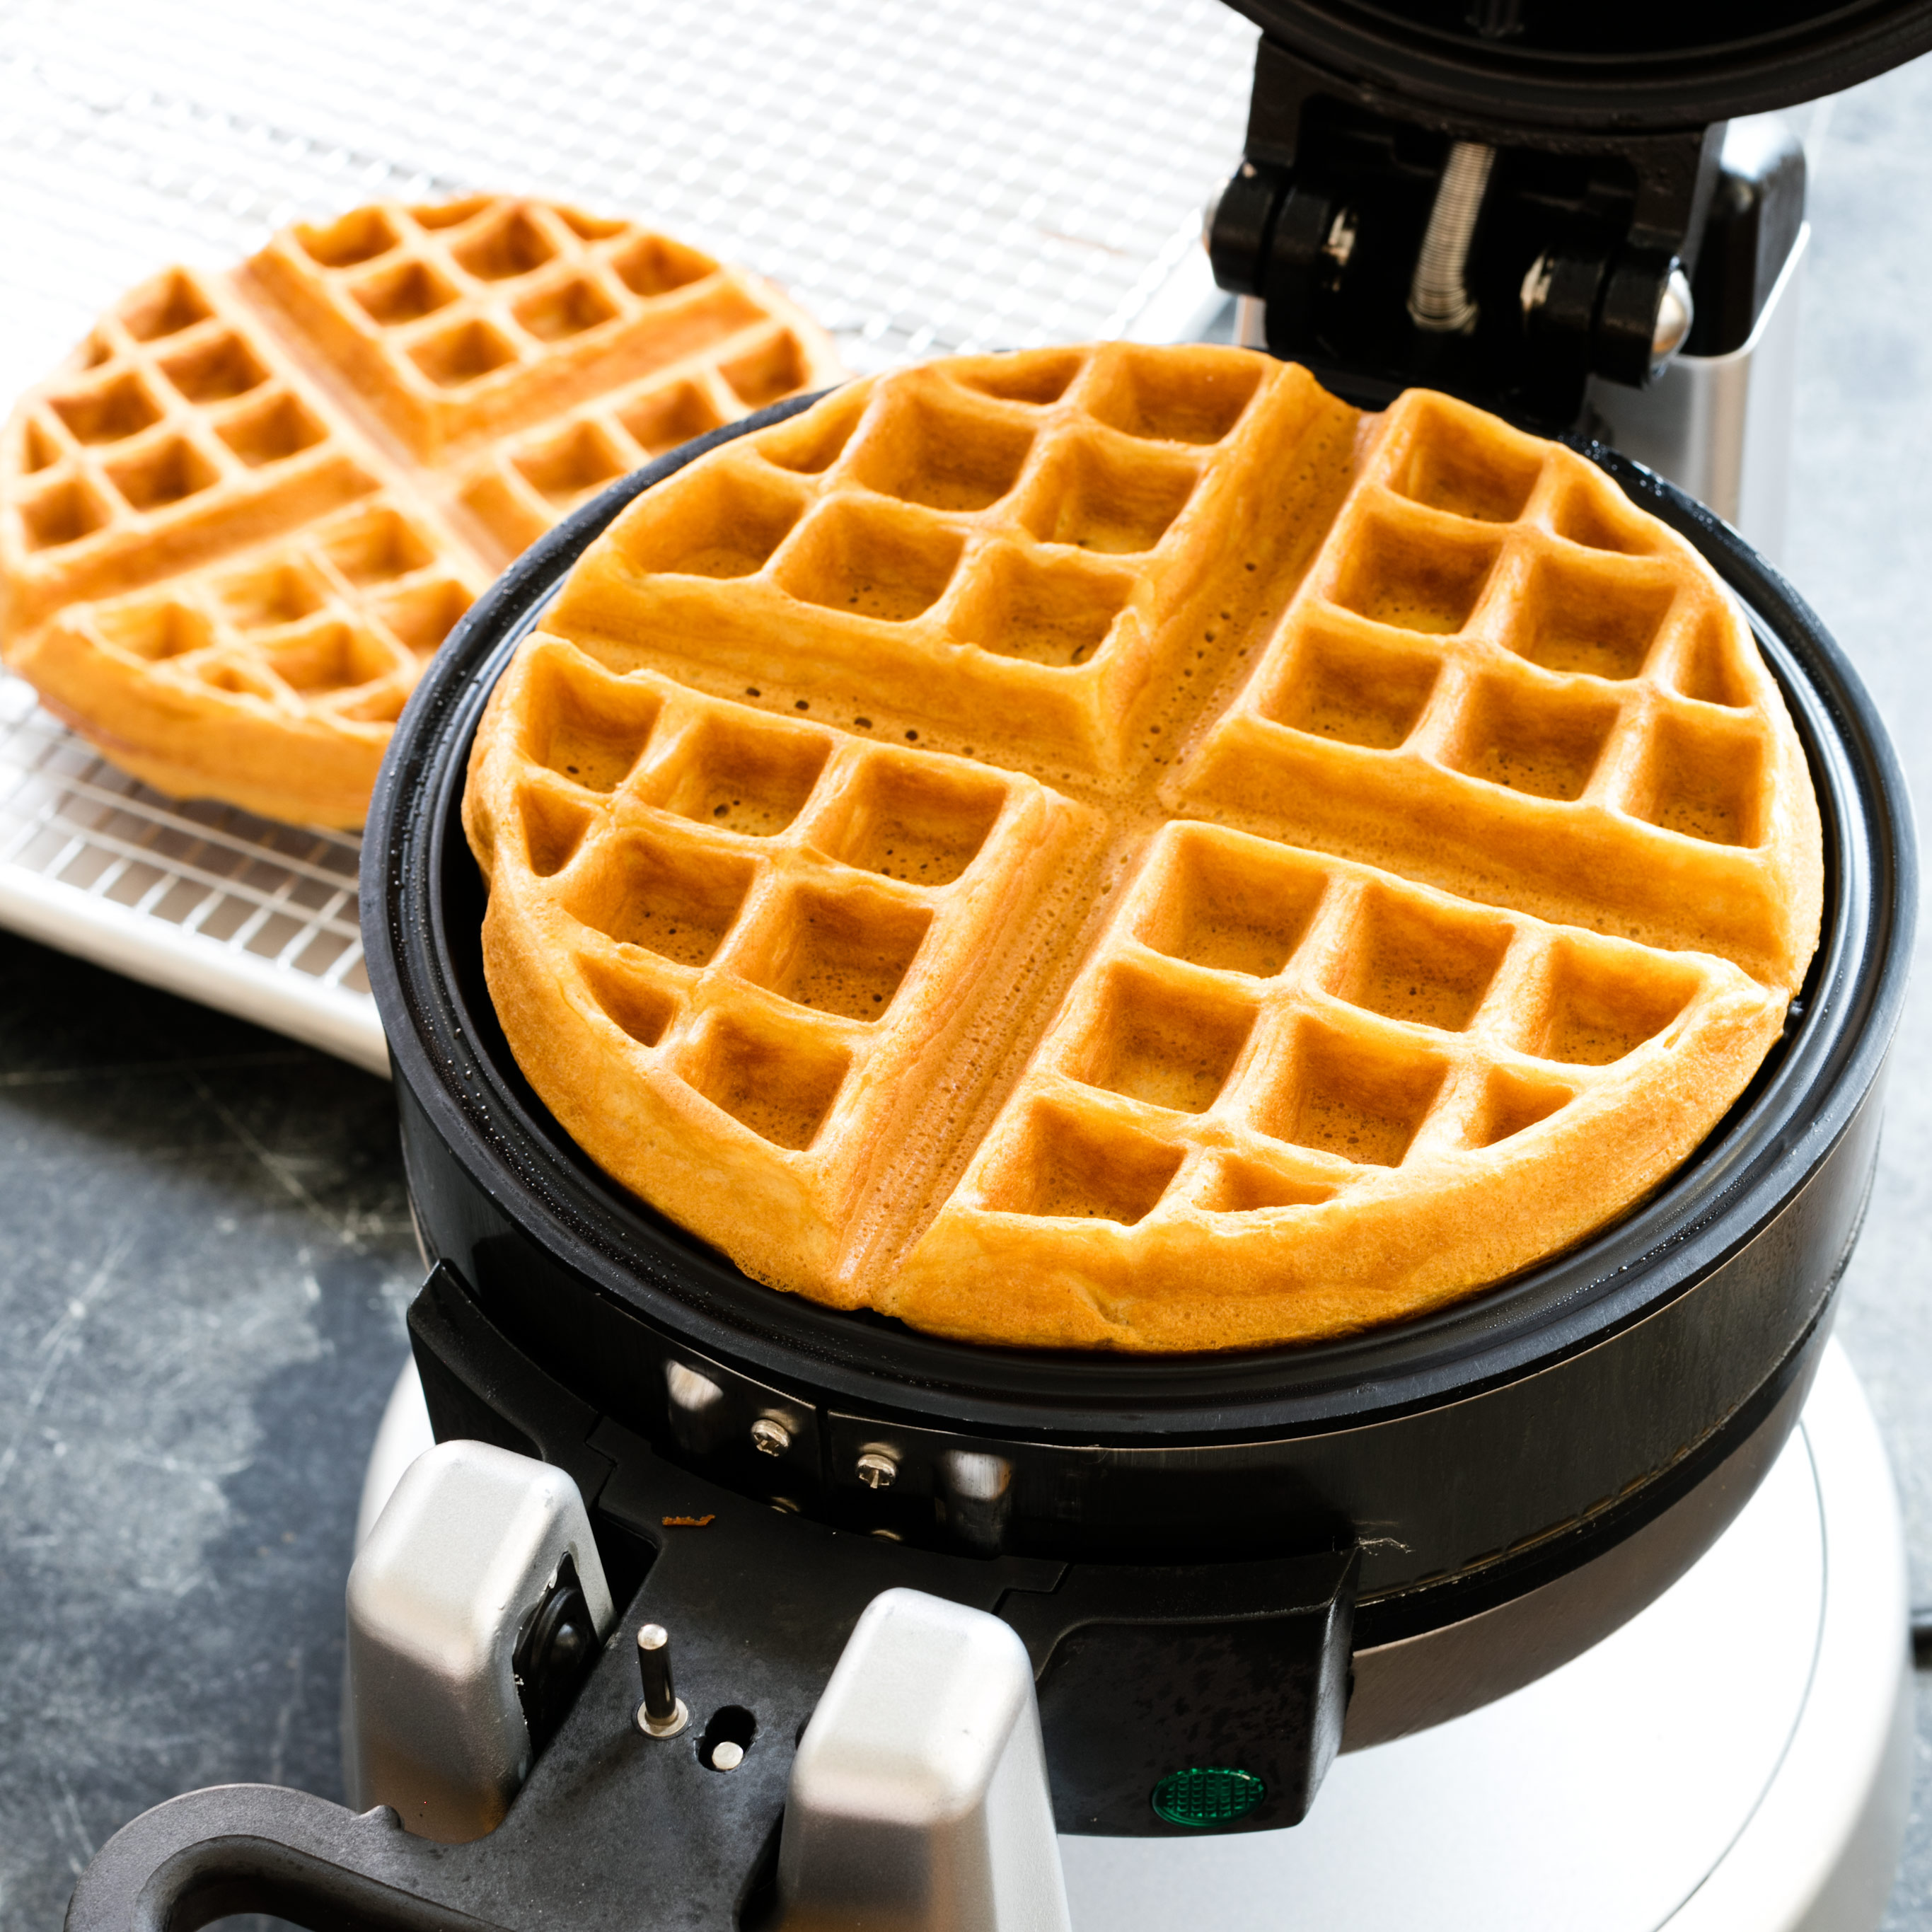 I found the waffle iron cleaning method a very big help, will be sure to use it Thanks, Kathy Hogan.